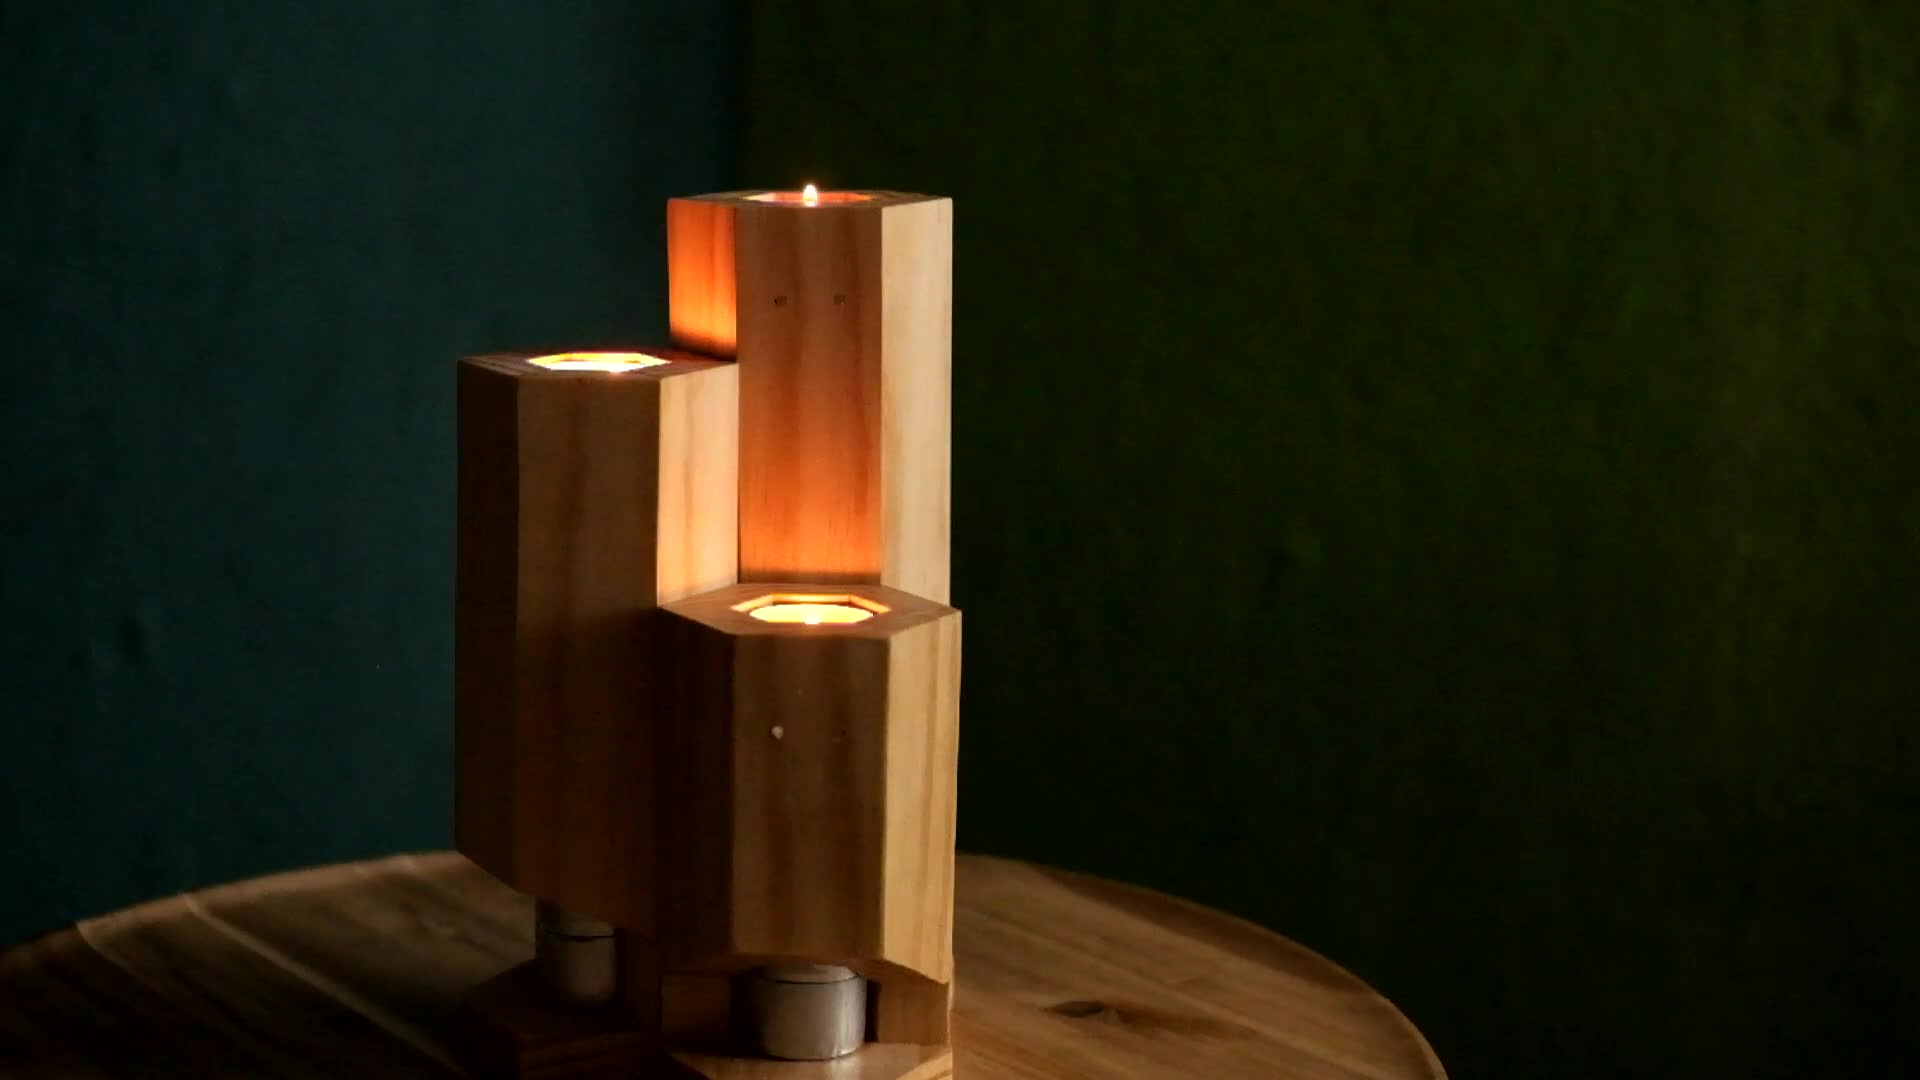 candle, tealights, woodworking, Hexagonal candle holders GIFs